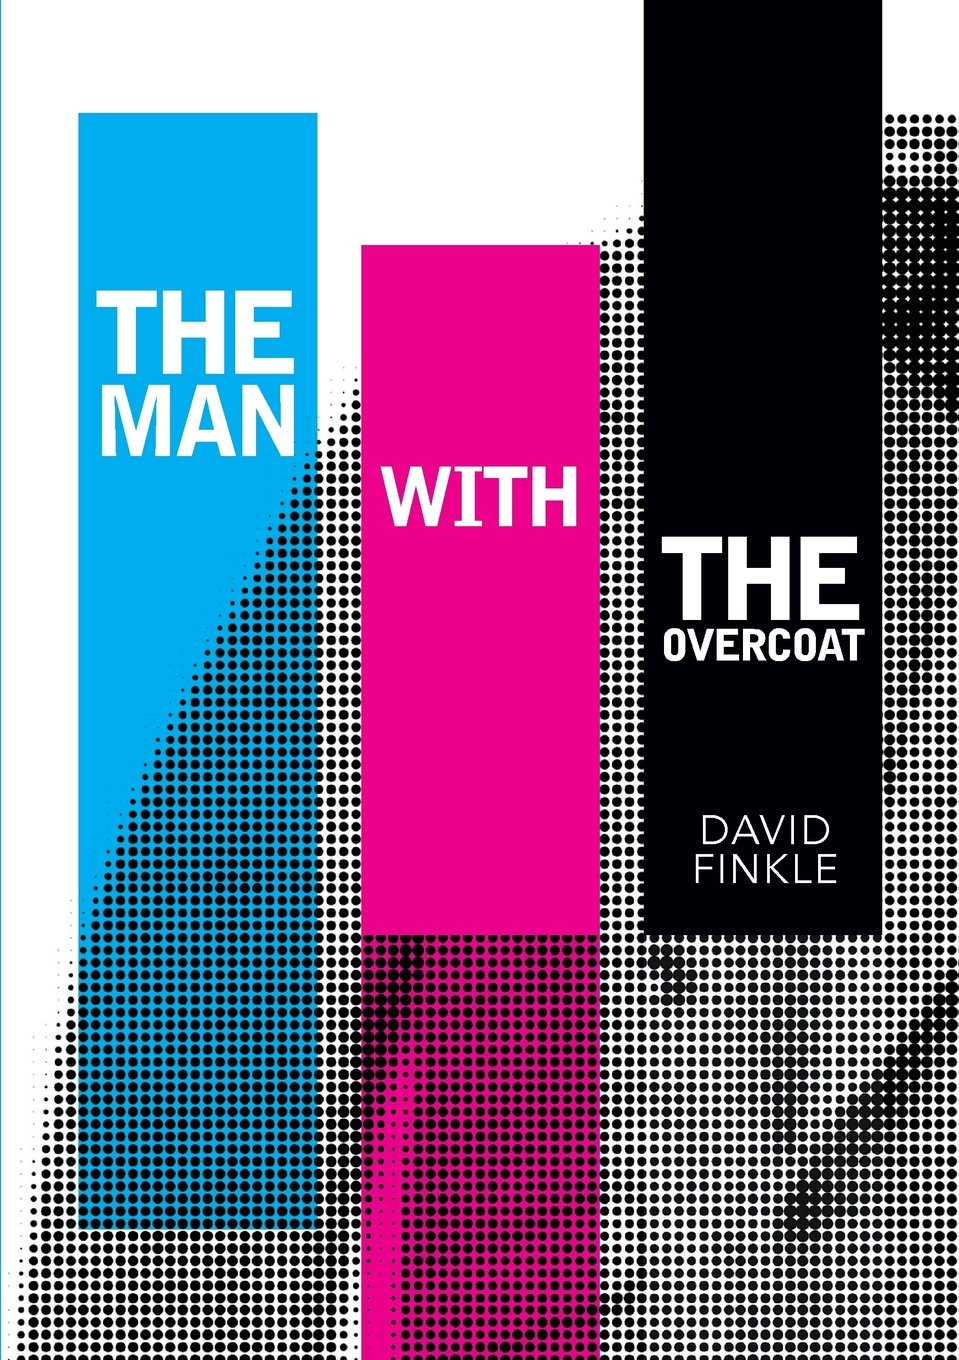 'The Man With the Overcoat' by David Finkle